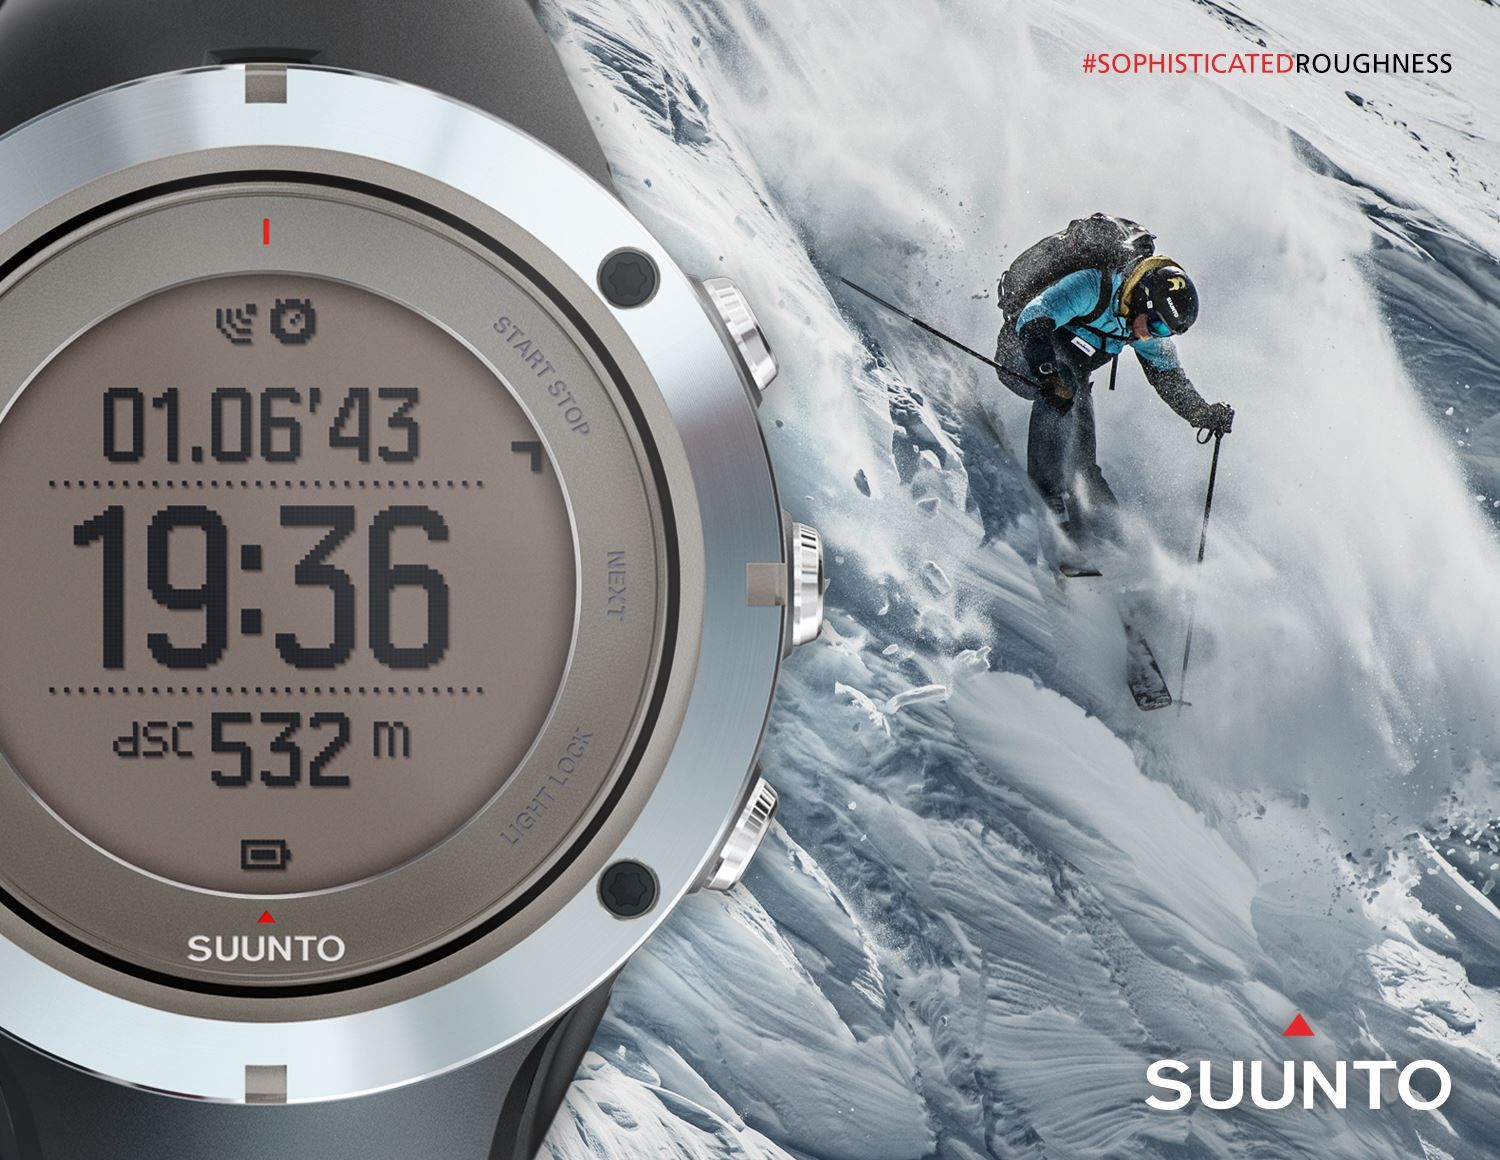 Suunto Ambit3 Peak Sapphire Black Hr Gps Watch For Outdoor Sports Sophisticated Roughness